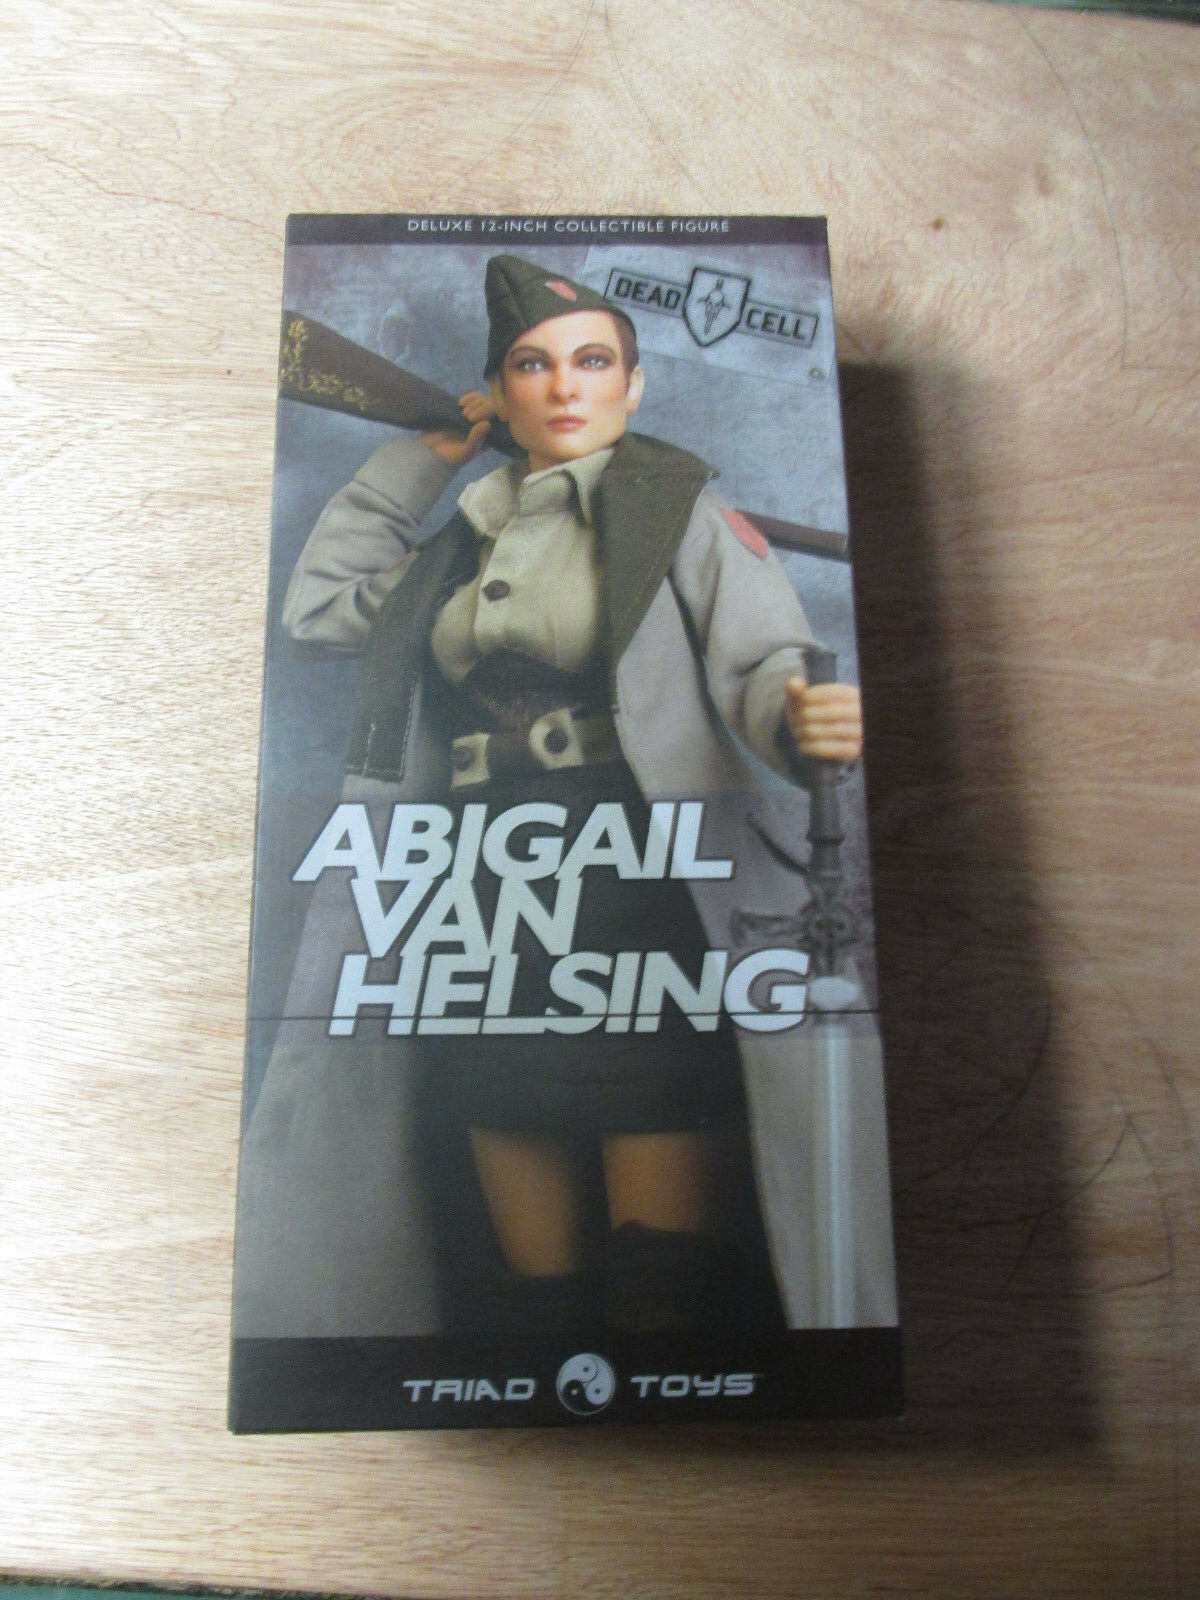 Abigail Van Helsing Dead Cell Hot  Figure  1 6 MIB Triad